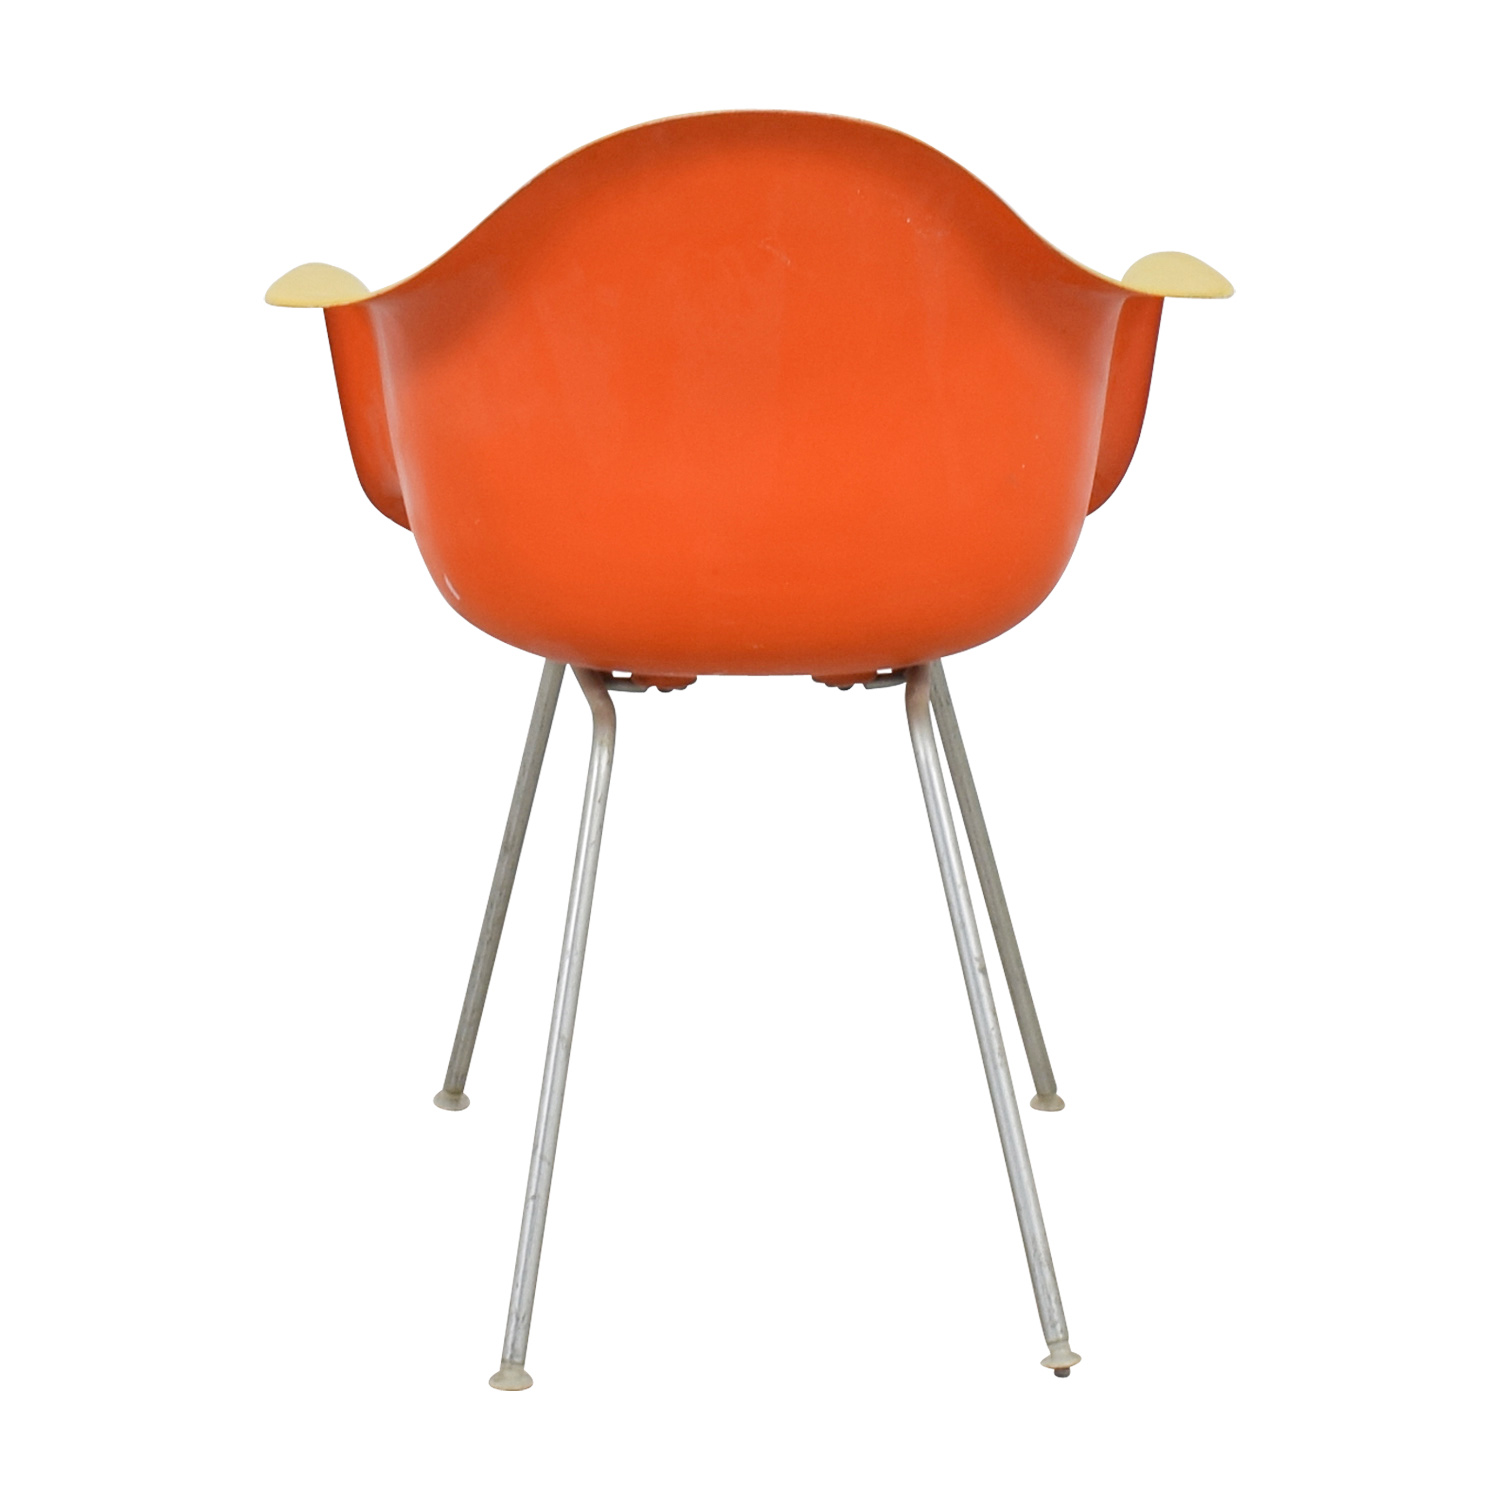 ... Orange Plastic Chairs #39   ... Yellow And Orange Plastic Eames  Inspired Arm ...